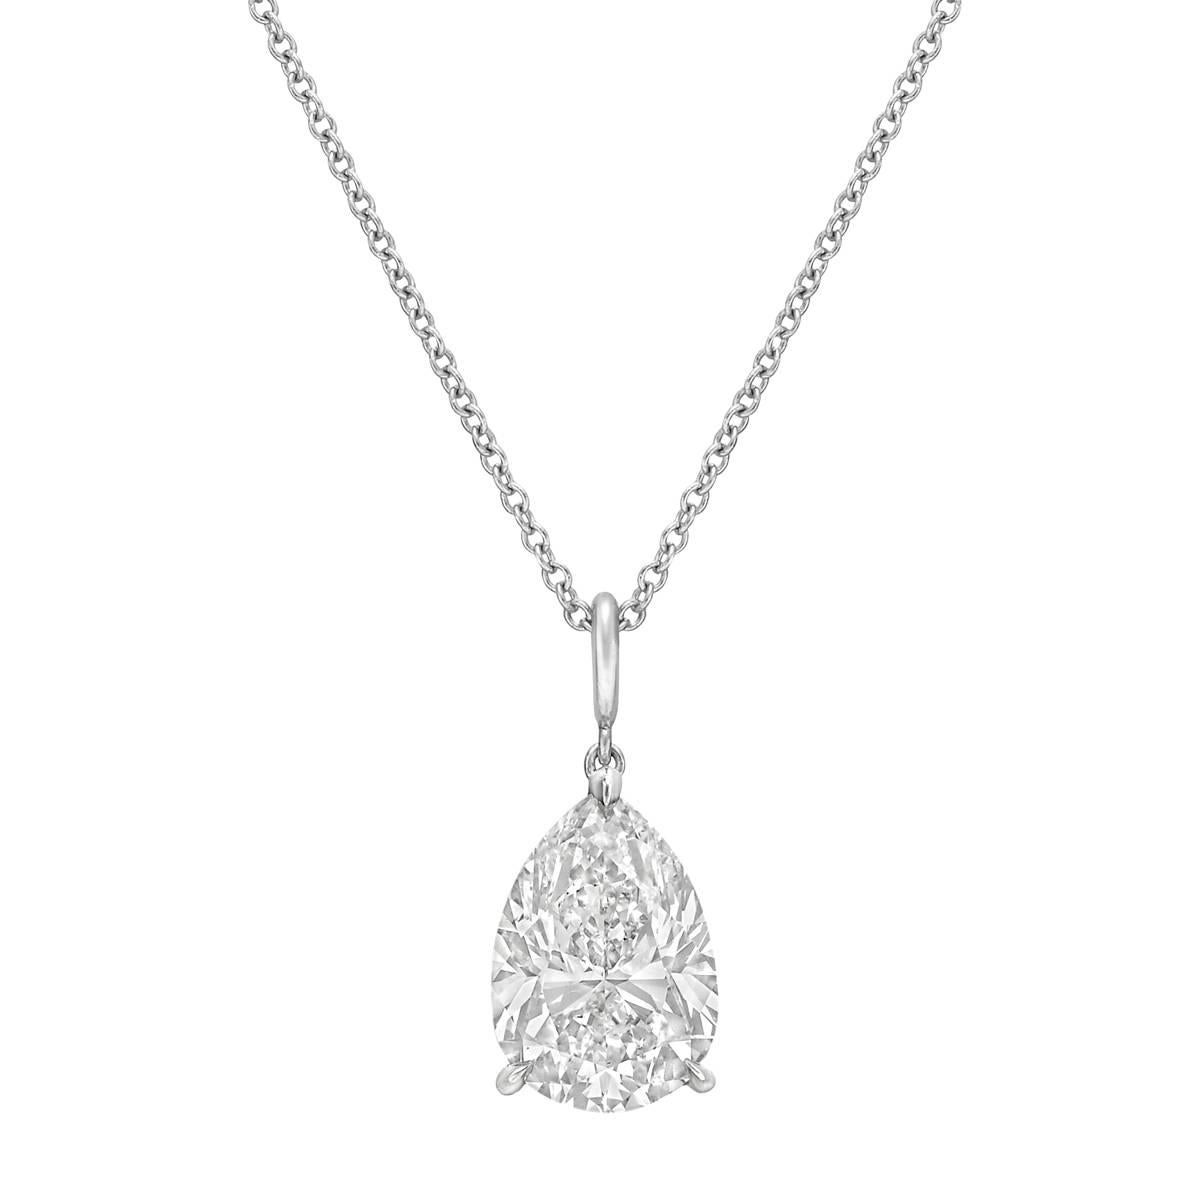 necklaces necklace diamond white pendant shop pear with chain shaped iroff gold shape